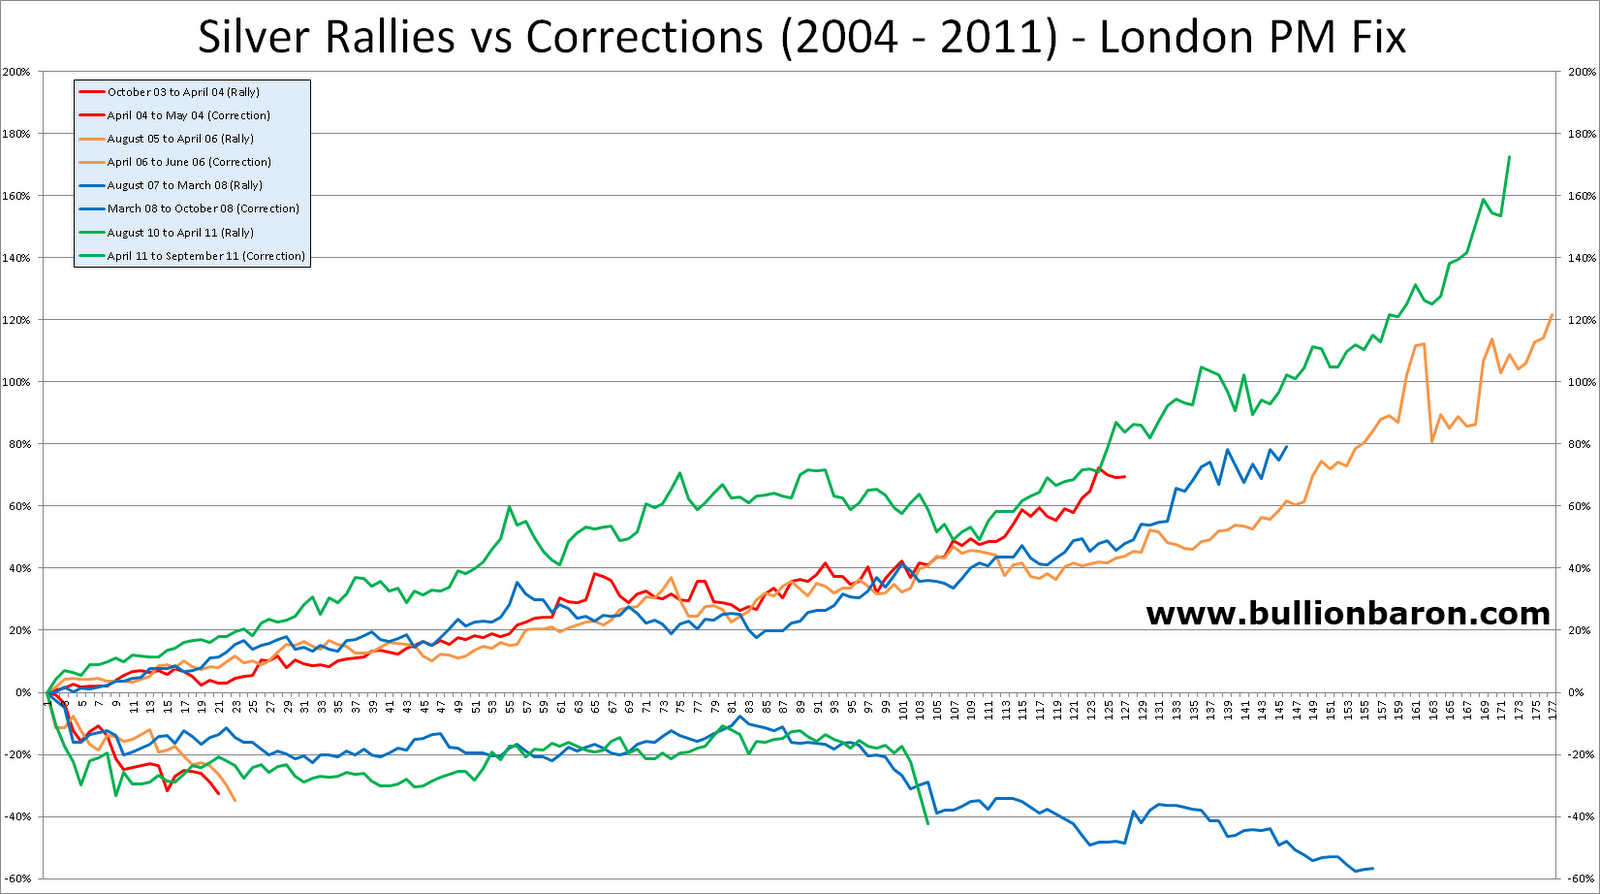 Silver+Rallies+vs+Silver+Corrections+2004+to+2011.png